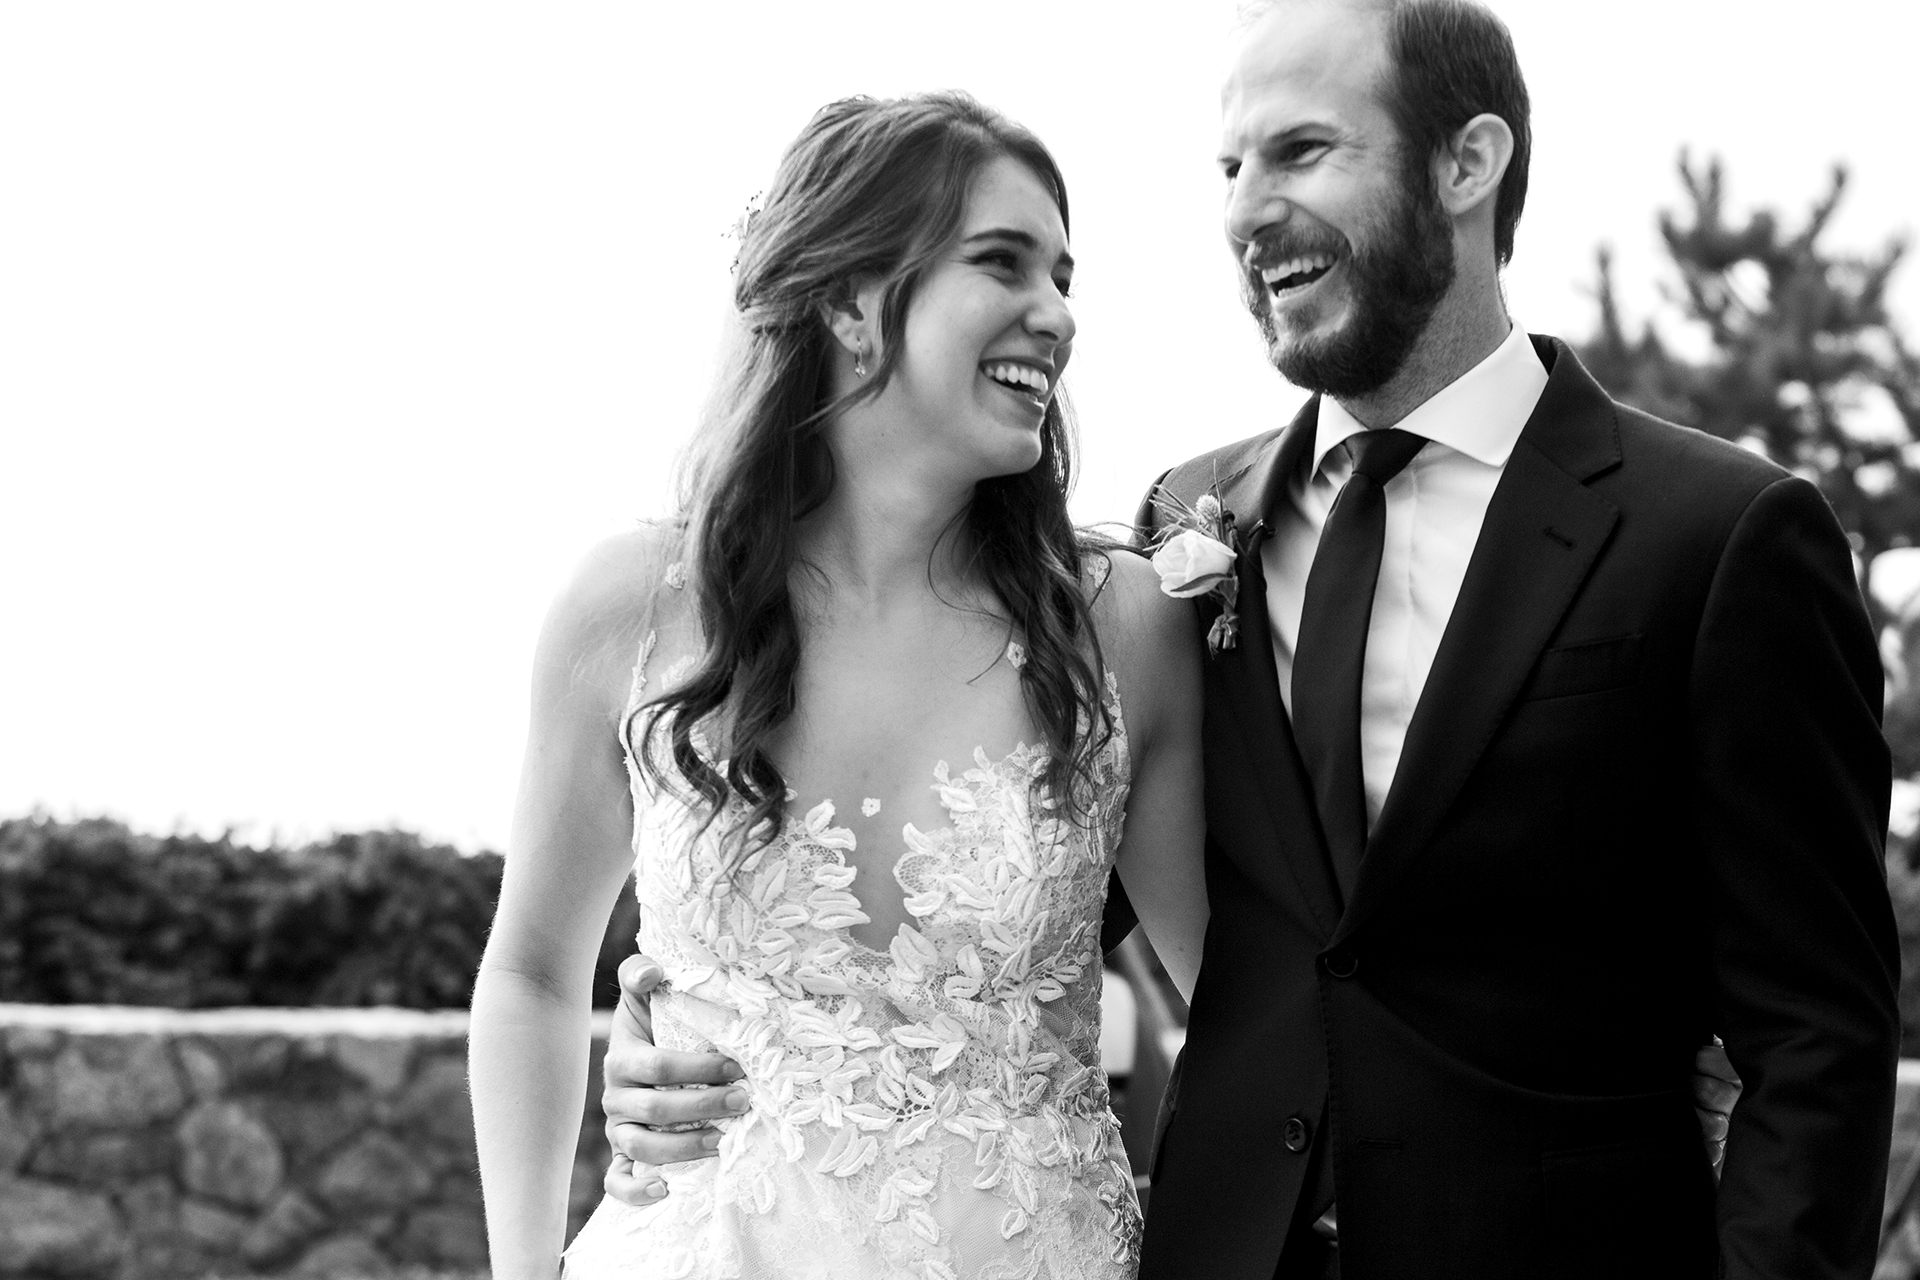 Wind and Sea Big Sur, CA Wedding Home Rental Pics |  this couple was elated to finally tie the knot